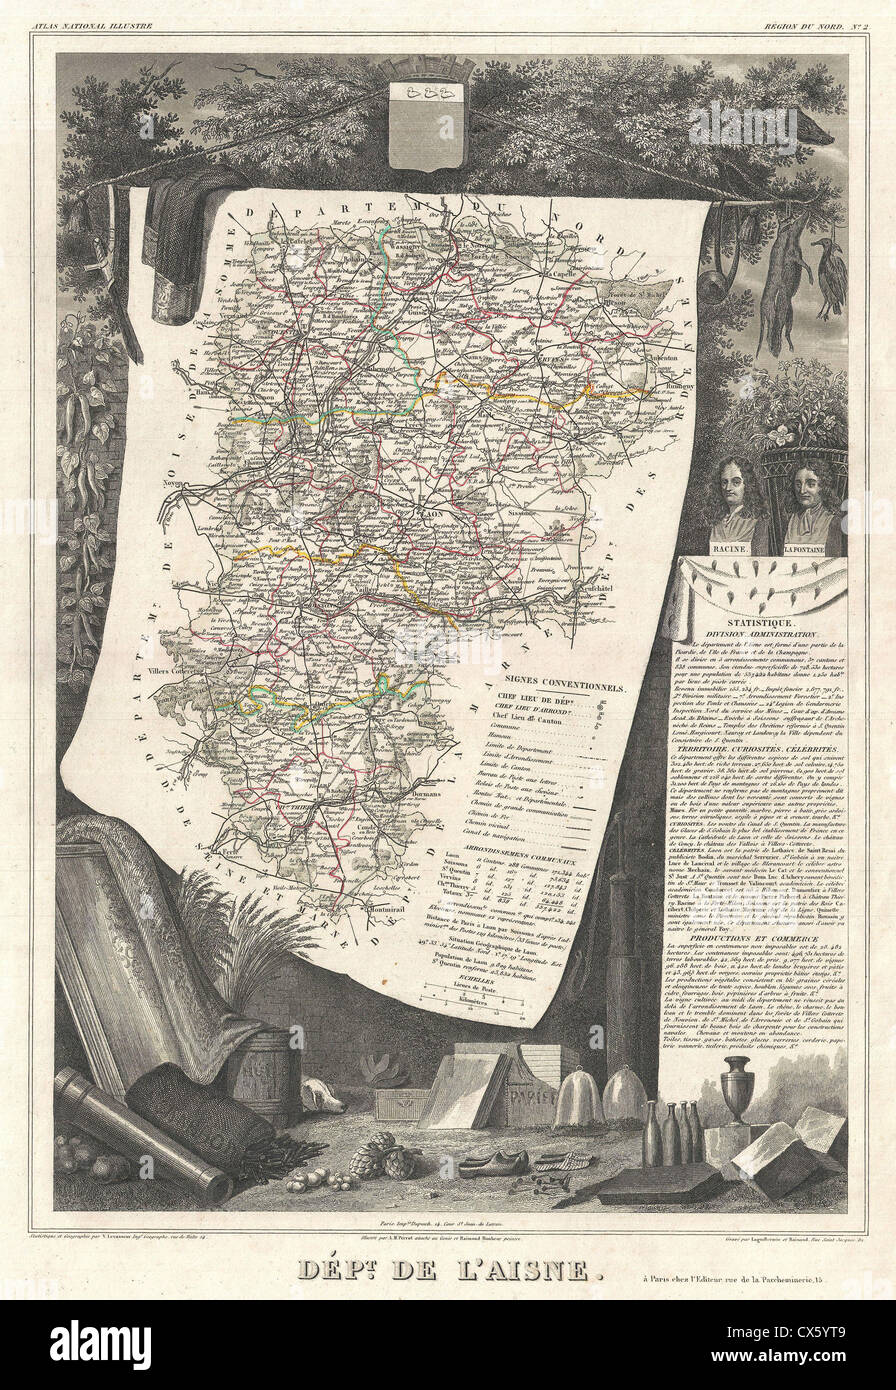 1852 Levasseur Map of the Department L'Aisne, France - Stock Image